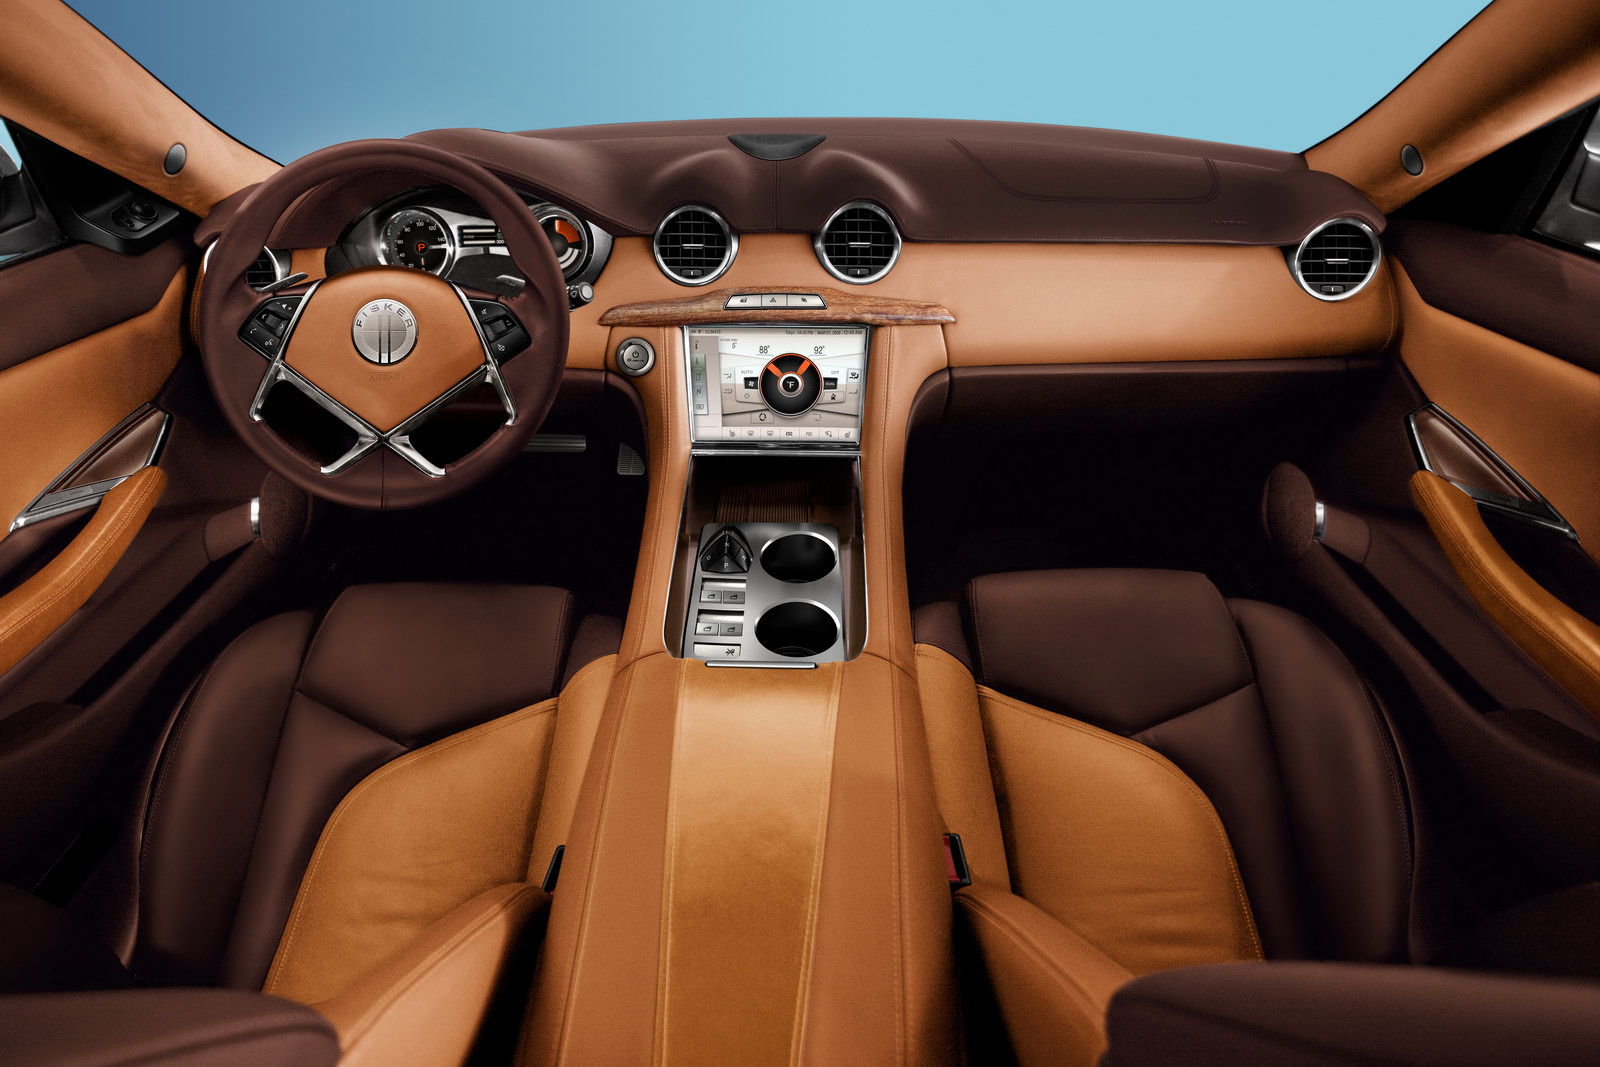 2012 Fisker Karma 2 The First Karma luxury edition for Leonardo Di Caprio. Fisker bags huge orders